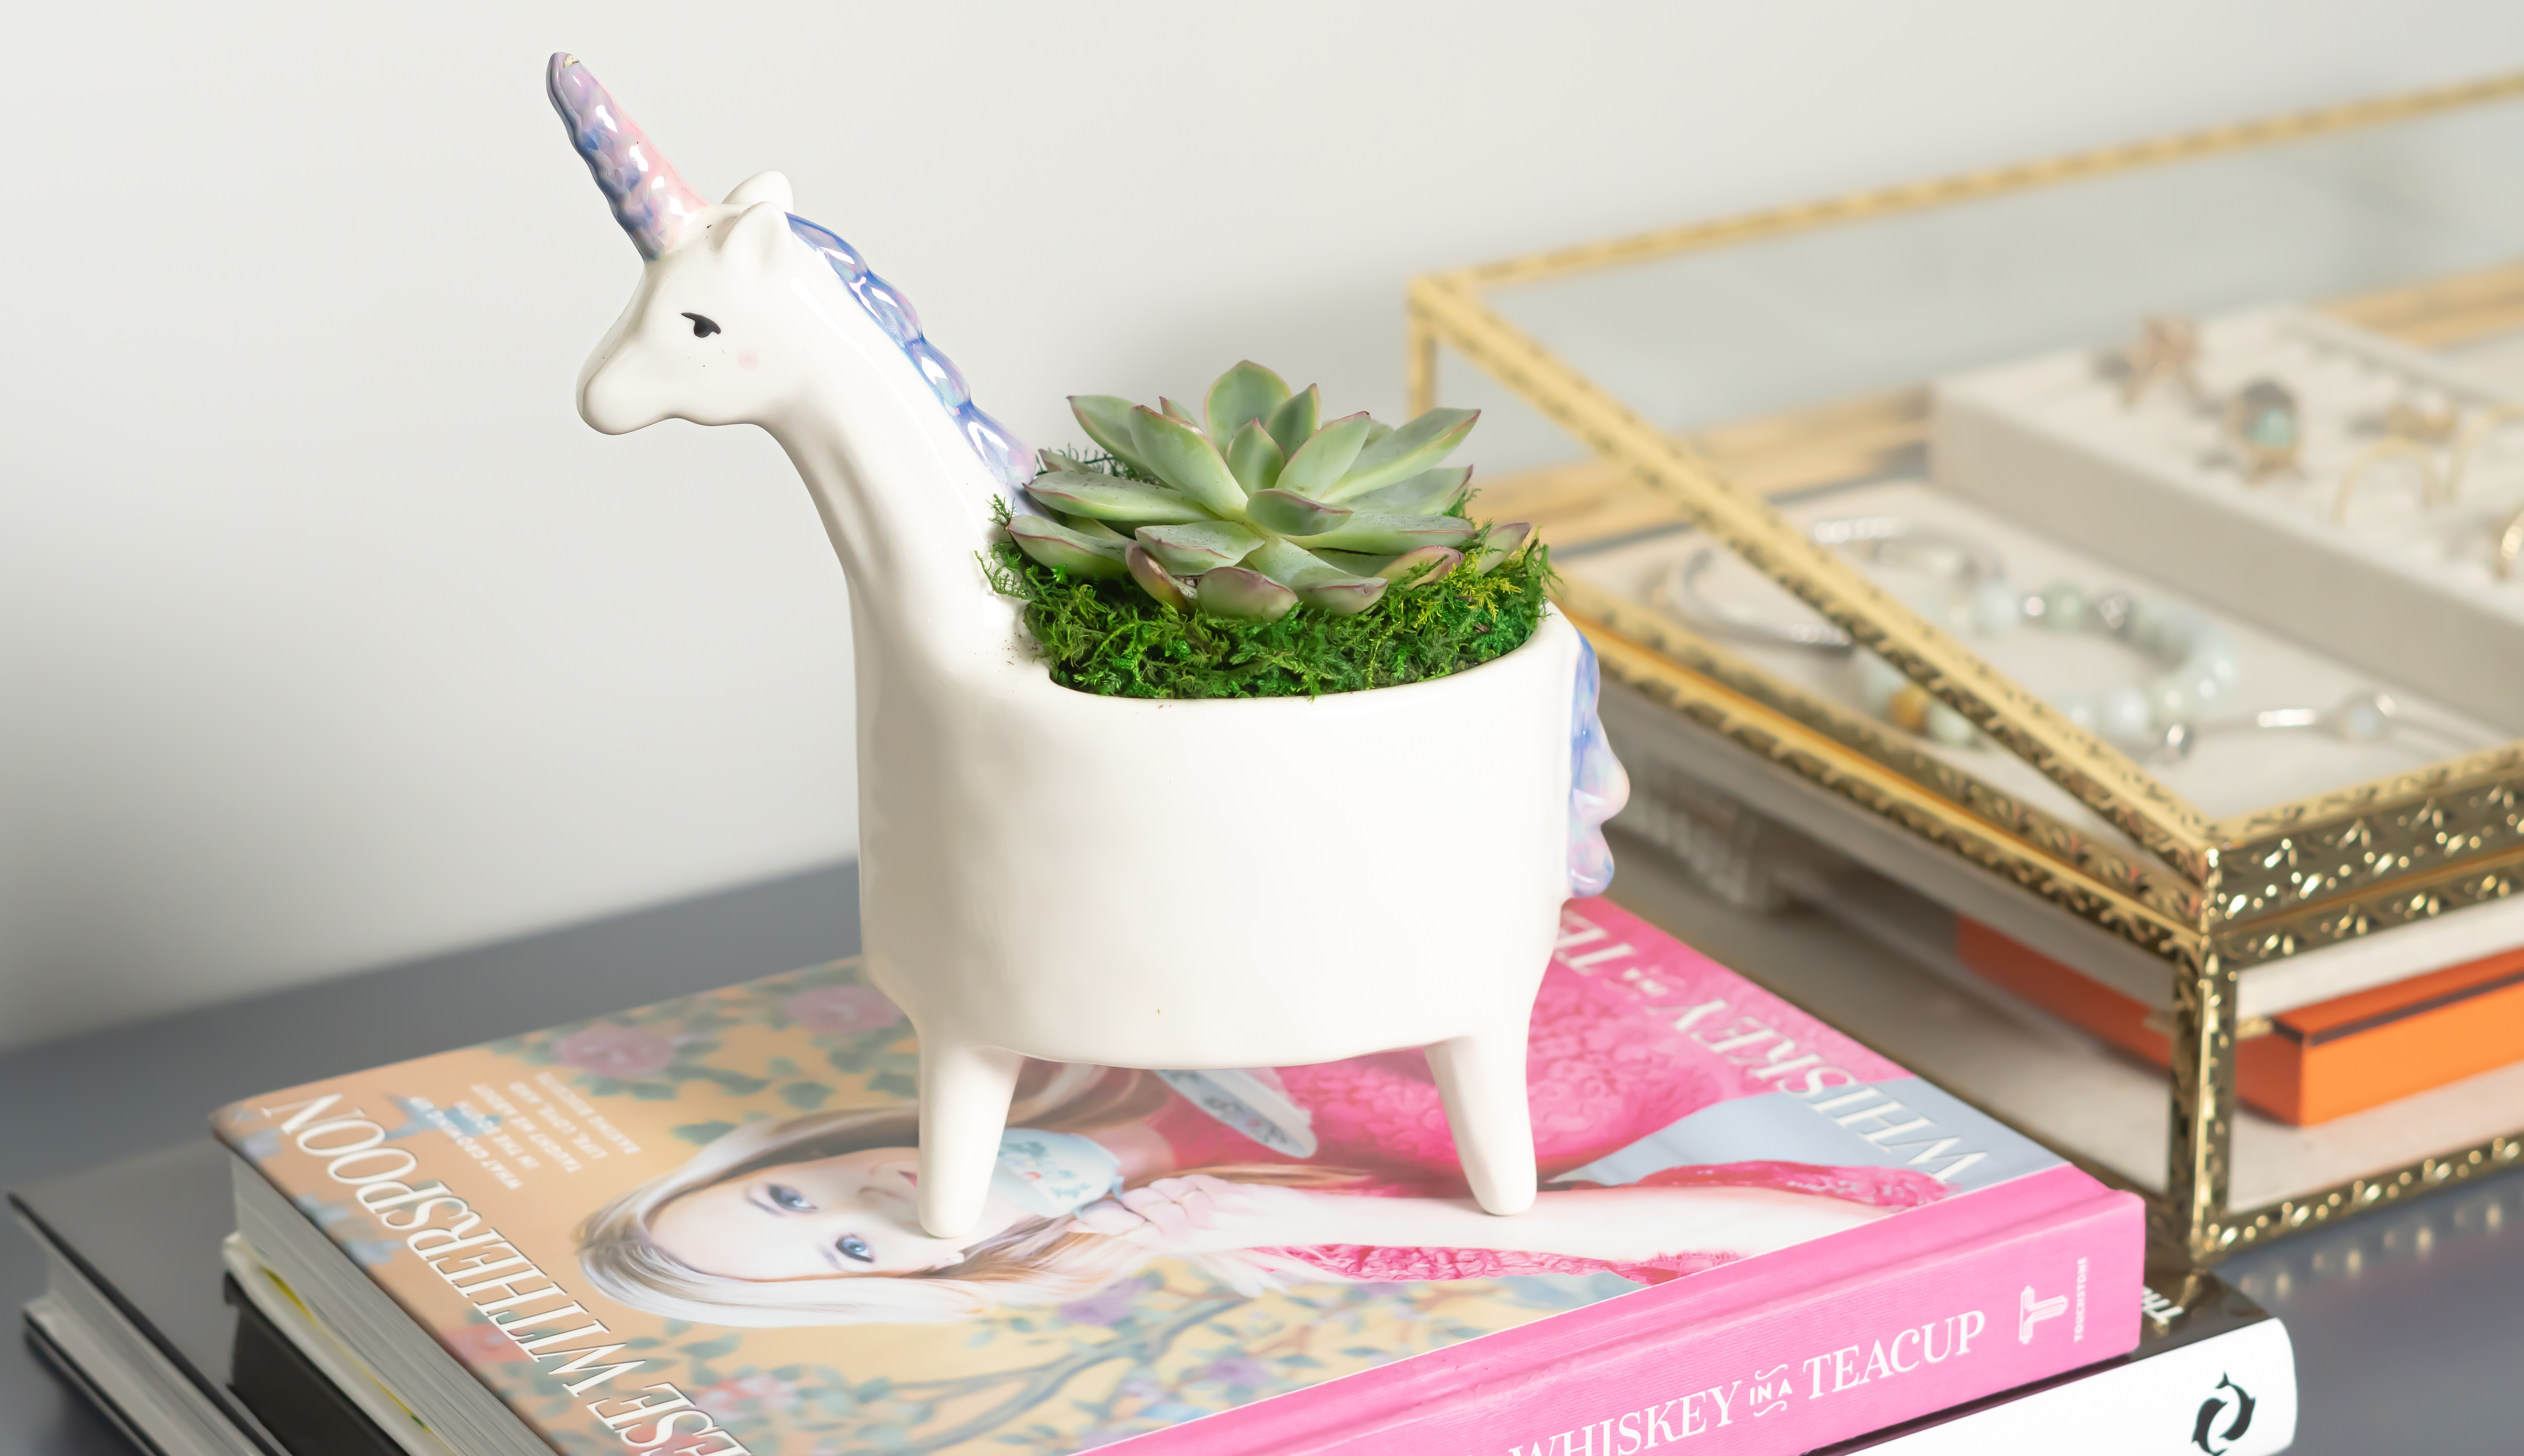 Succulent in a planter shaped like a unicorn